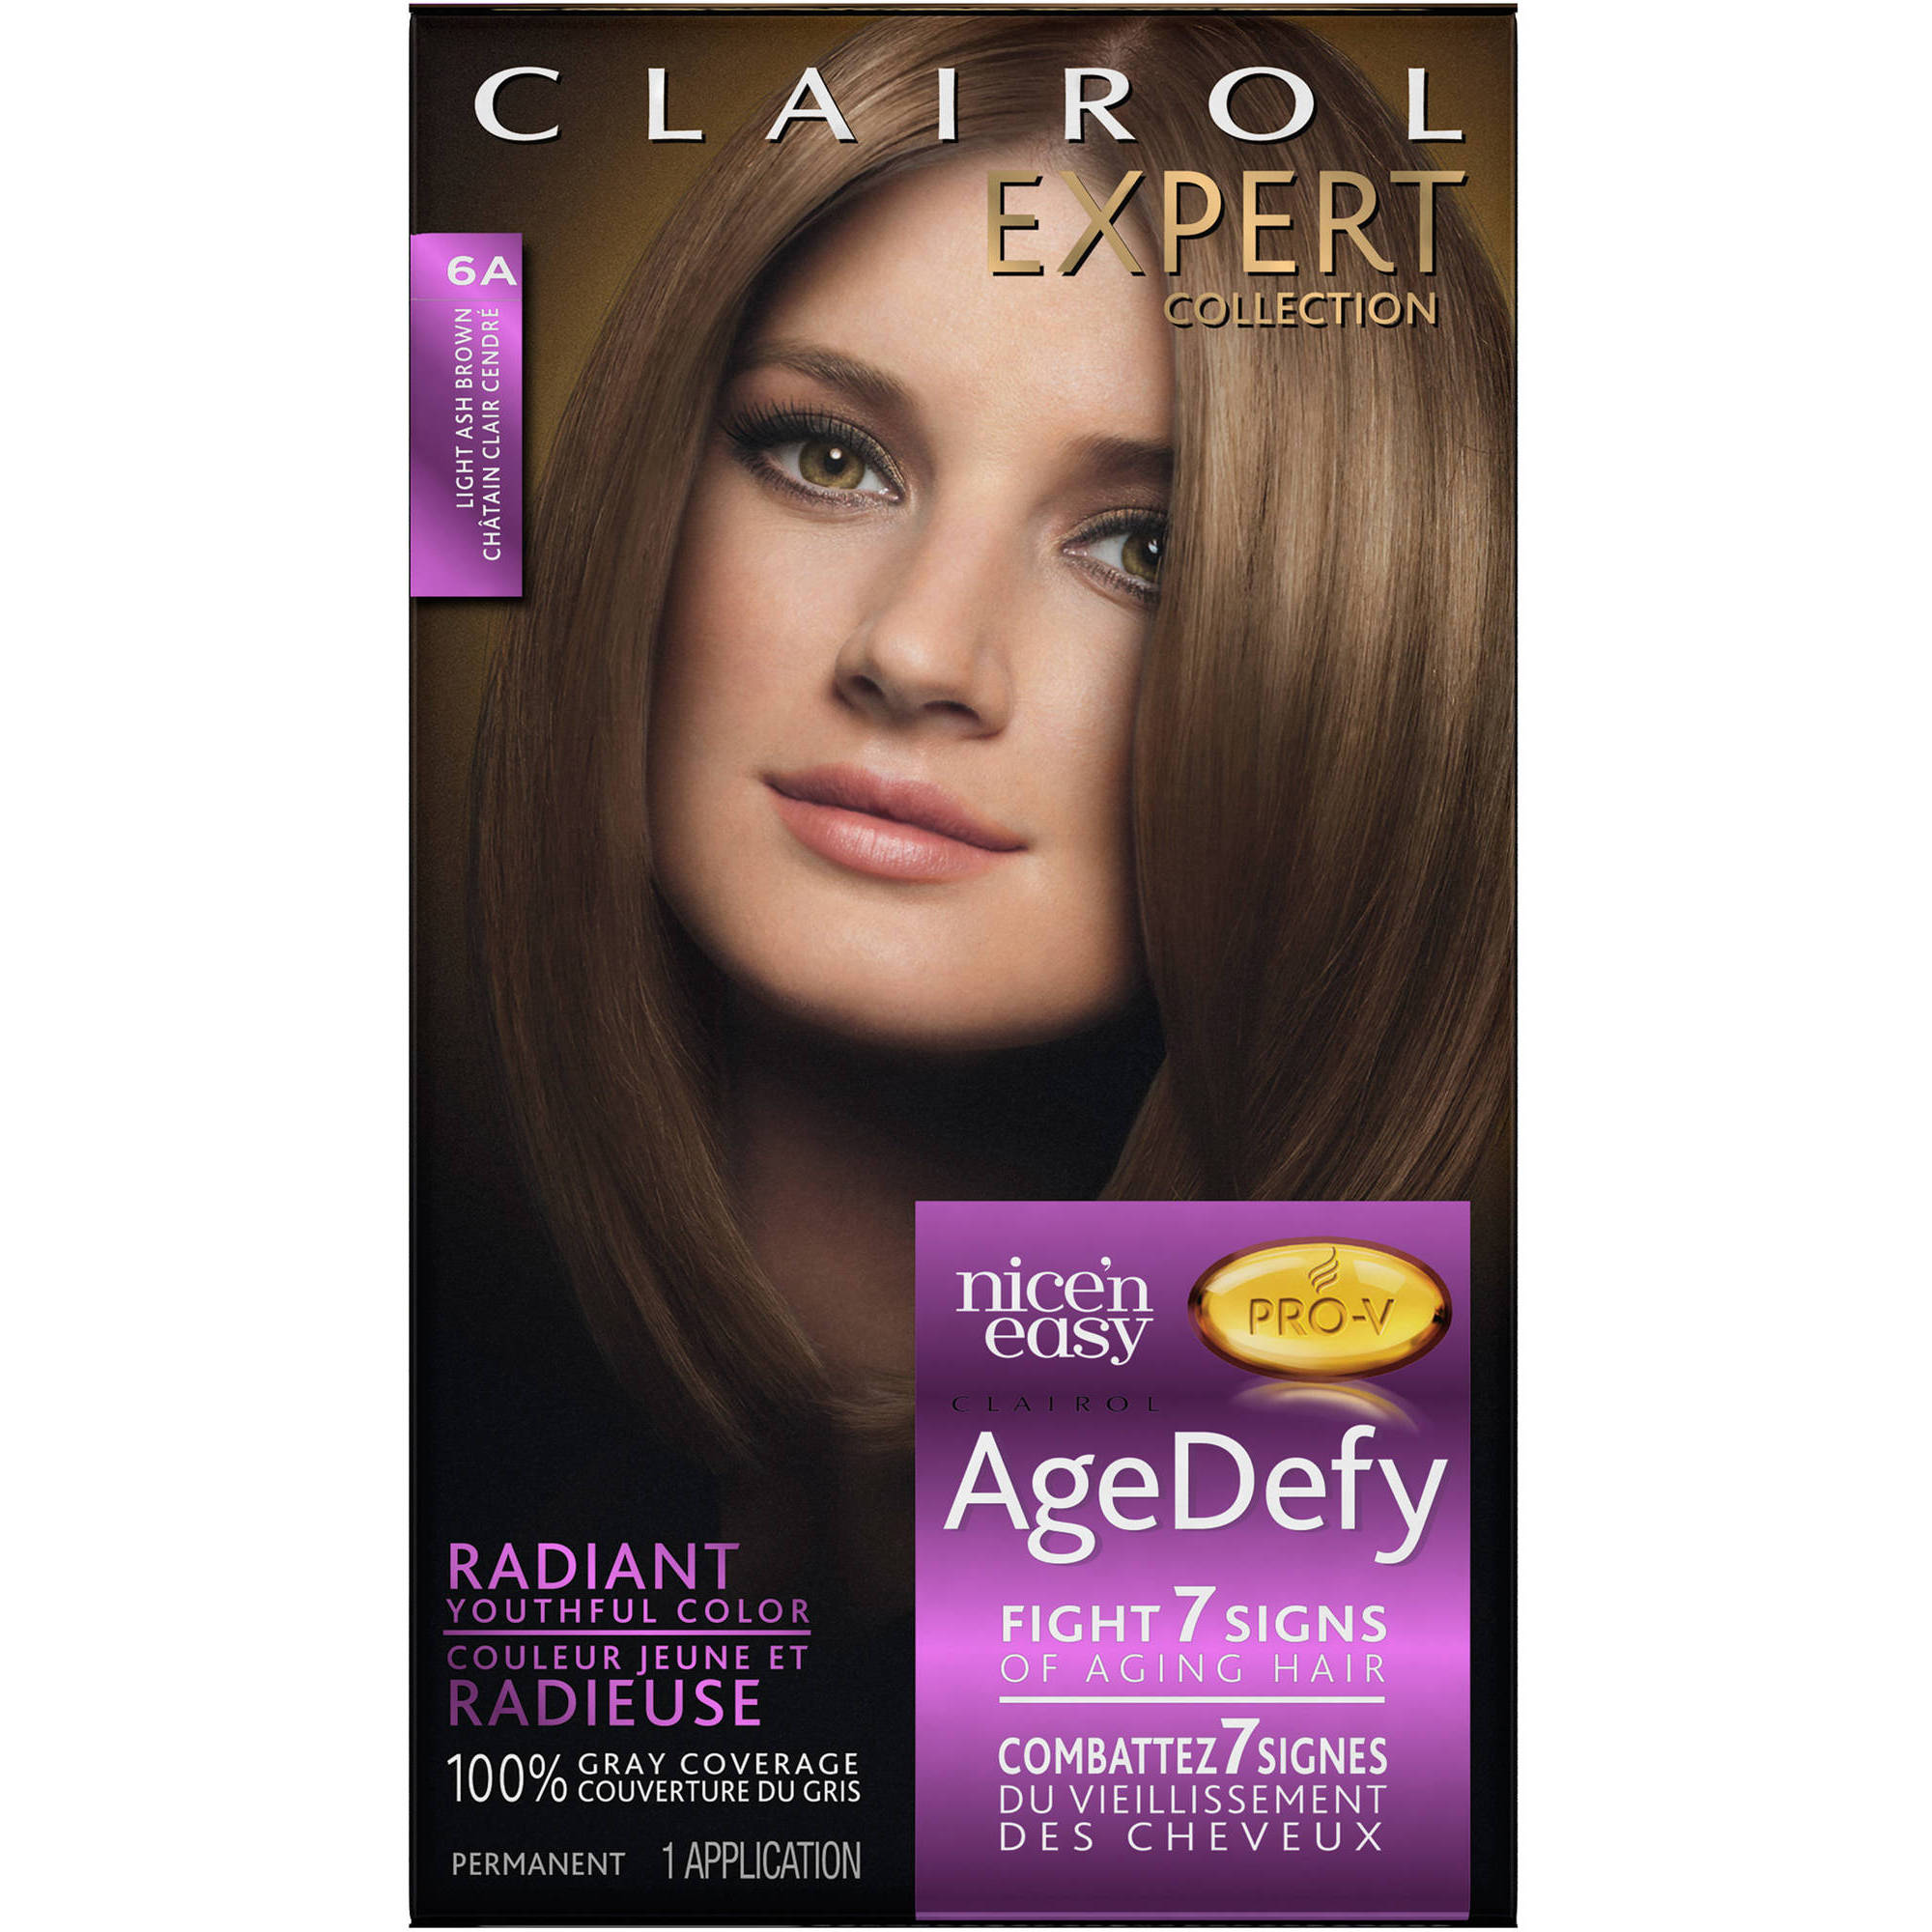 Clairol Expert Nice 'n Easy Age Defy Permanent Hair Color Kitr, 6A Light Ash Brown